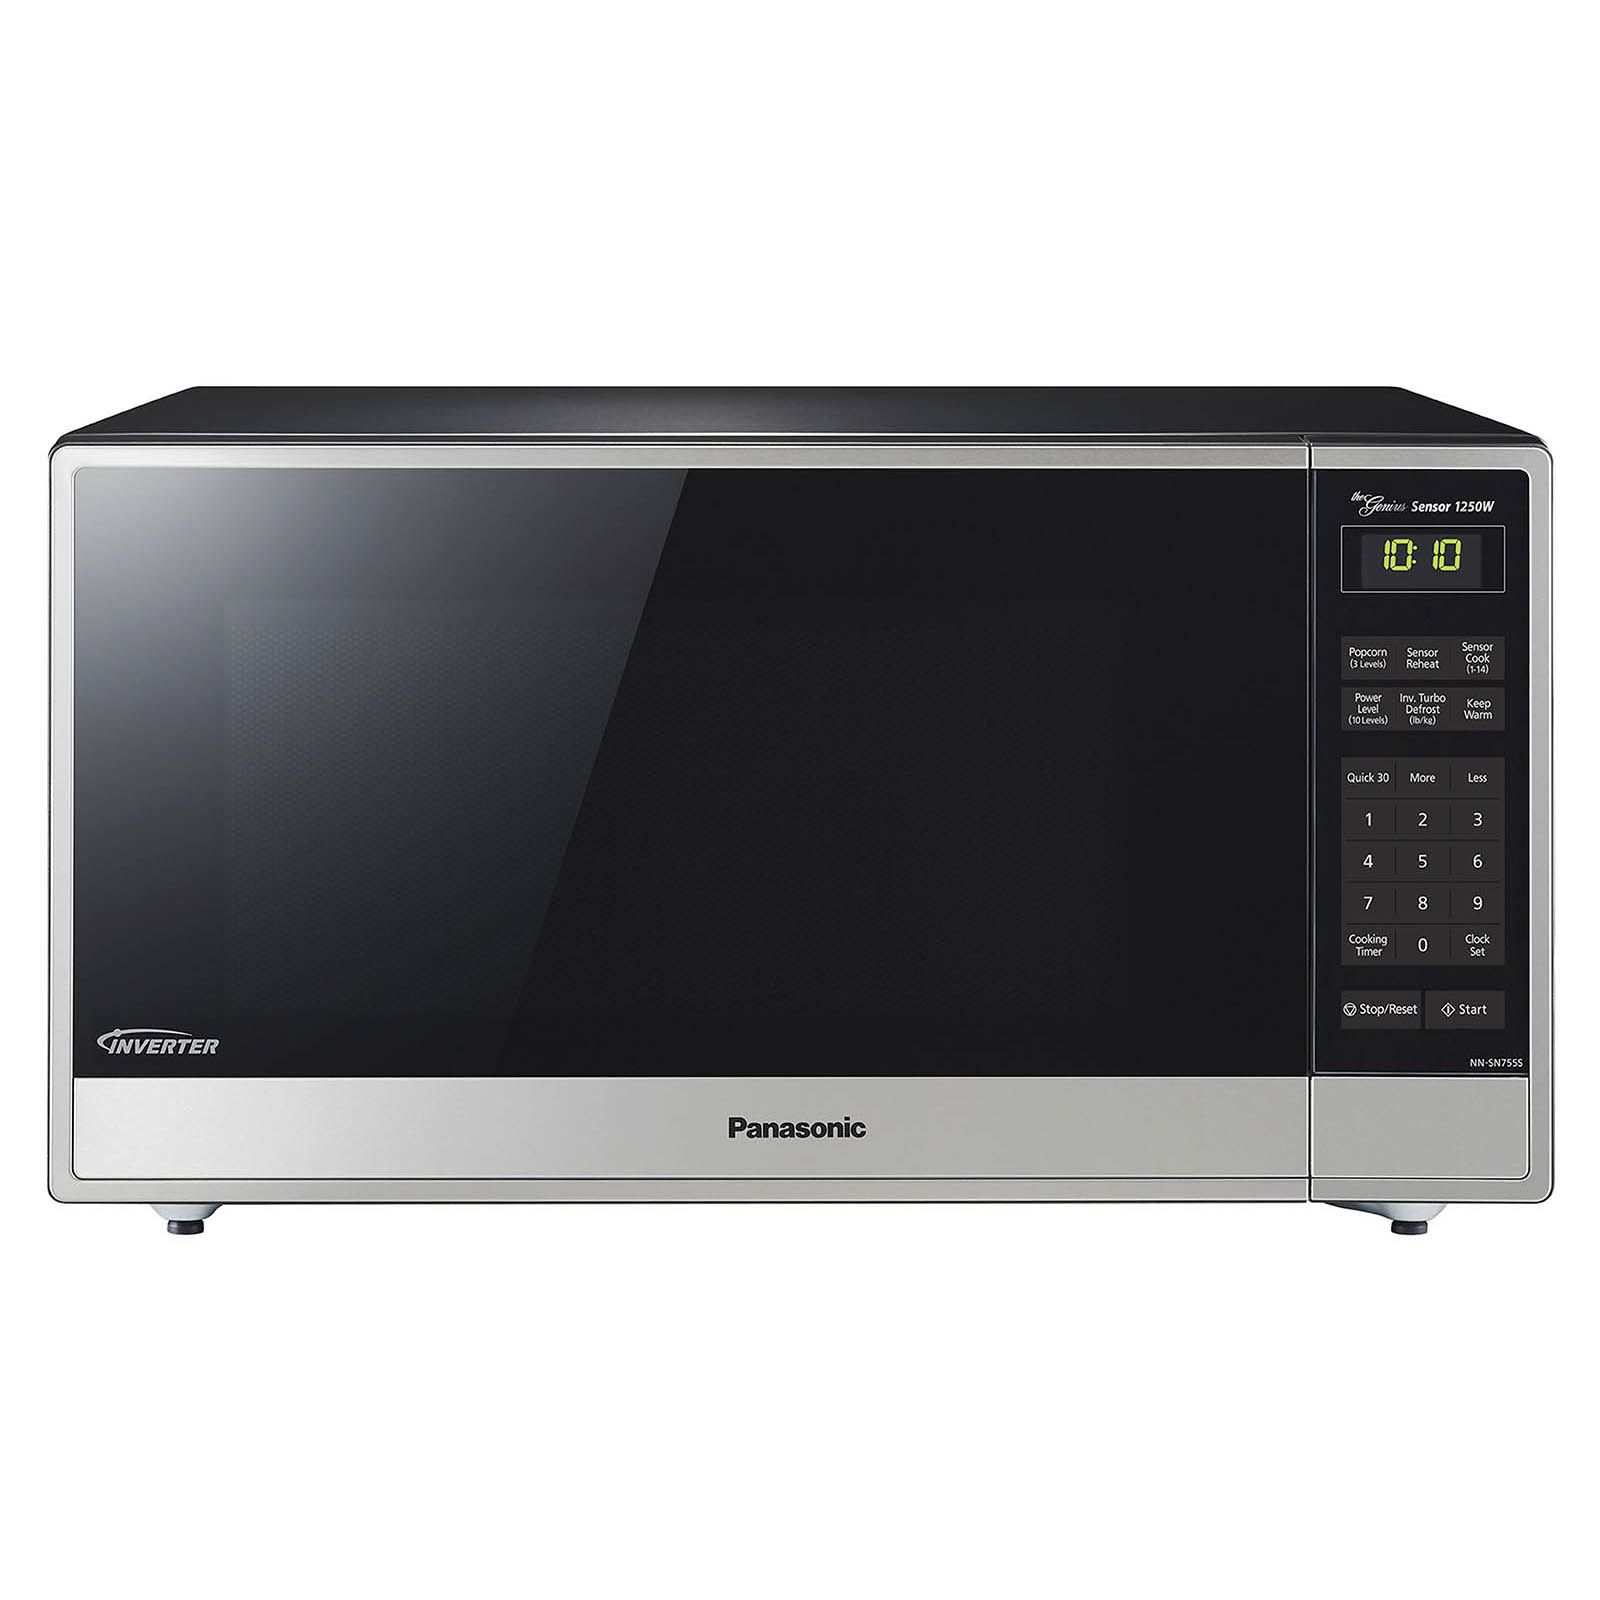 panasonic 1 6 cu ft 1 250w microwave with genius inverter technology stainless steel black